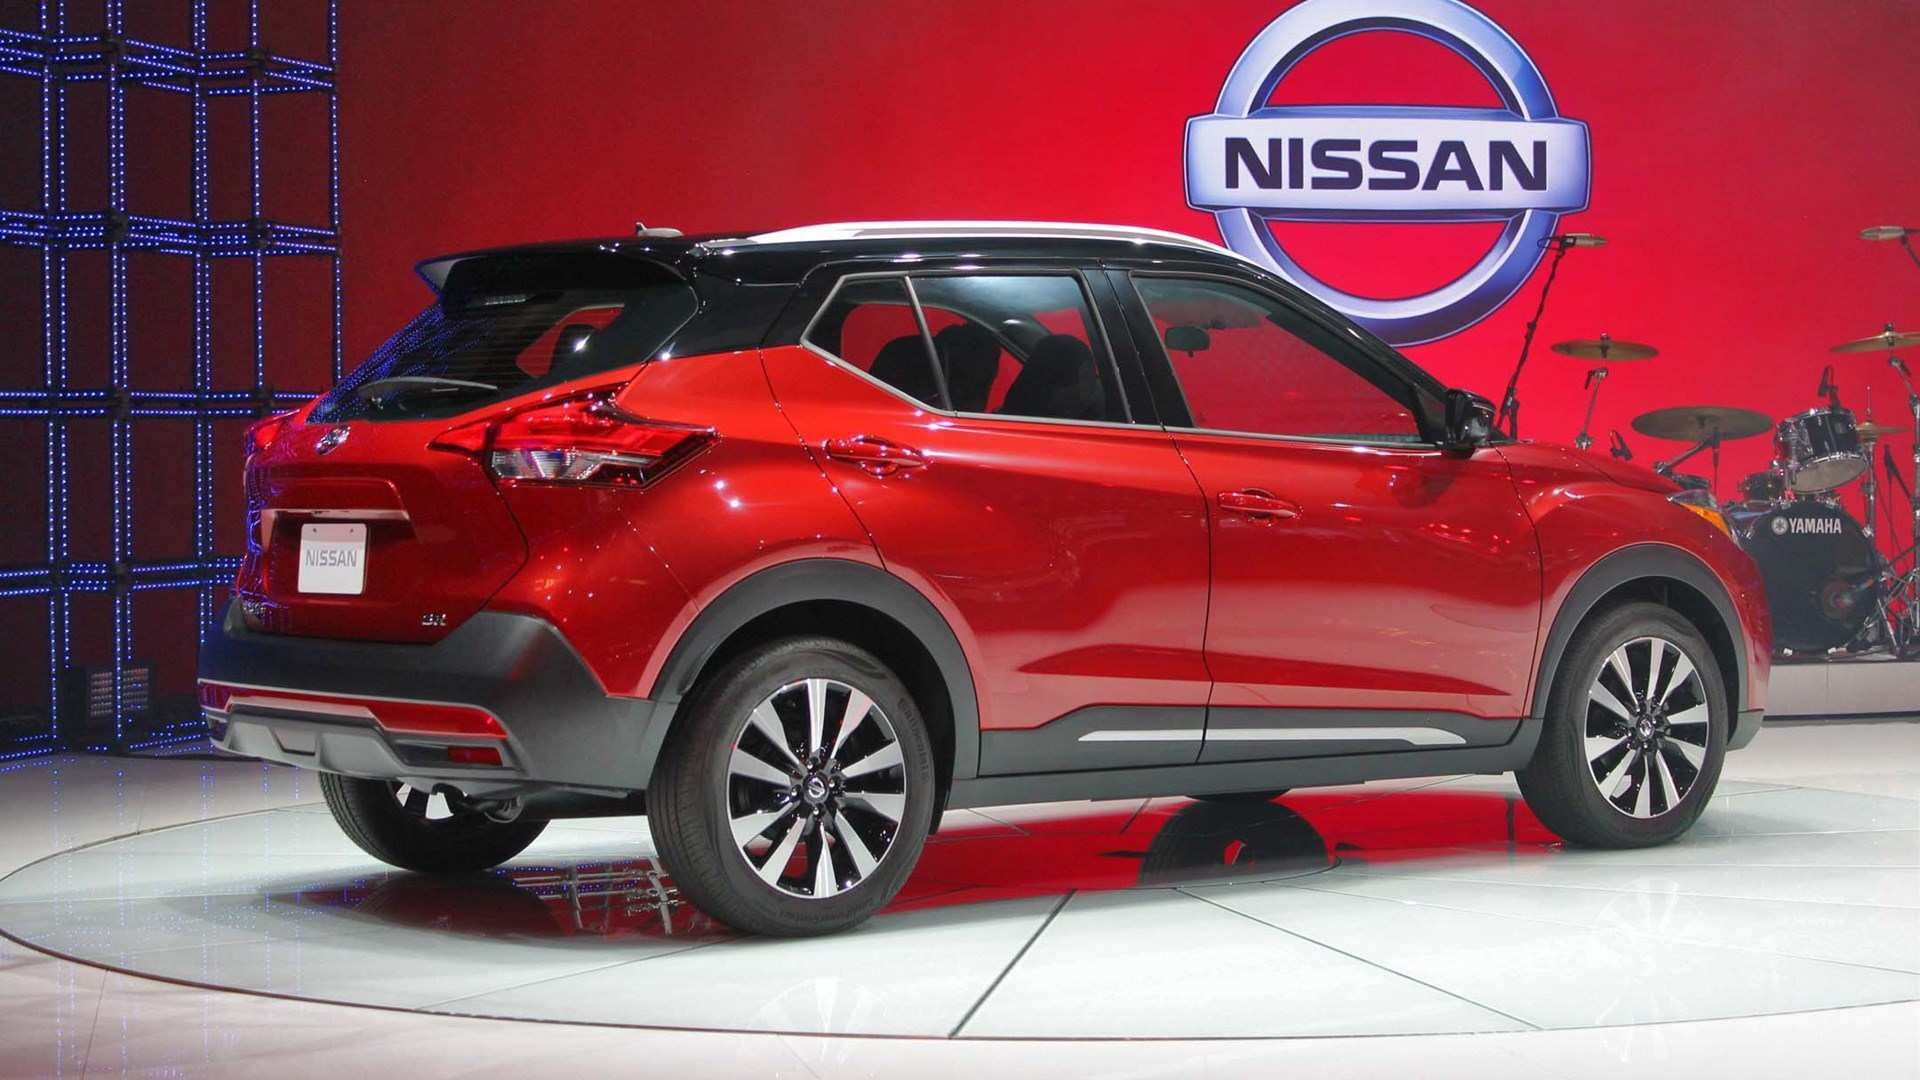 43 New 2019 Nissan Kicks Review Price And Release Date Price and Review for 2019 Nissan Kicks Review Price And Release Date